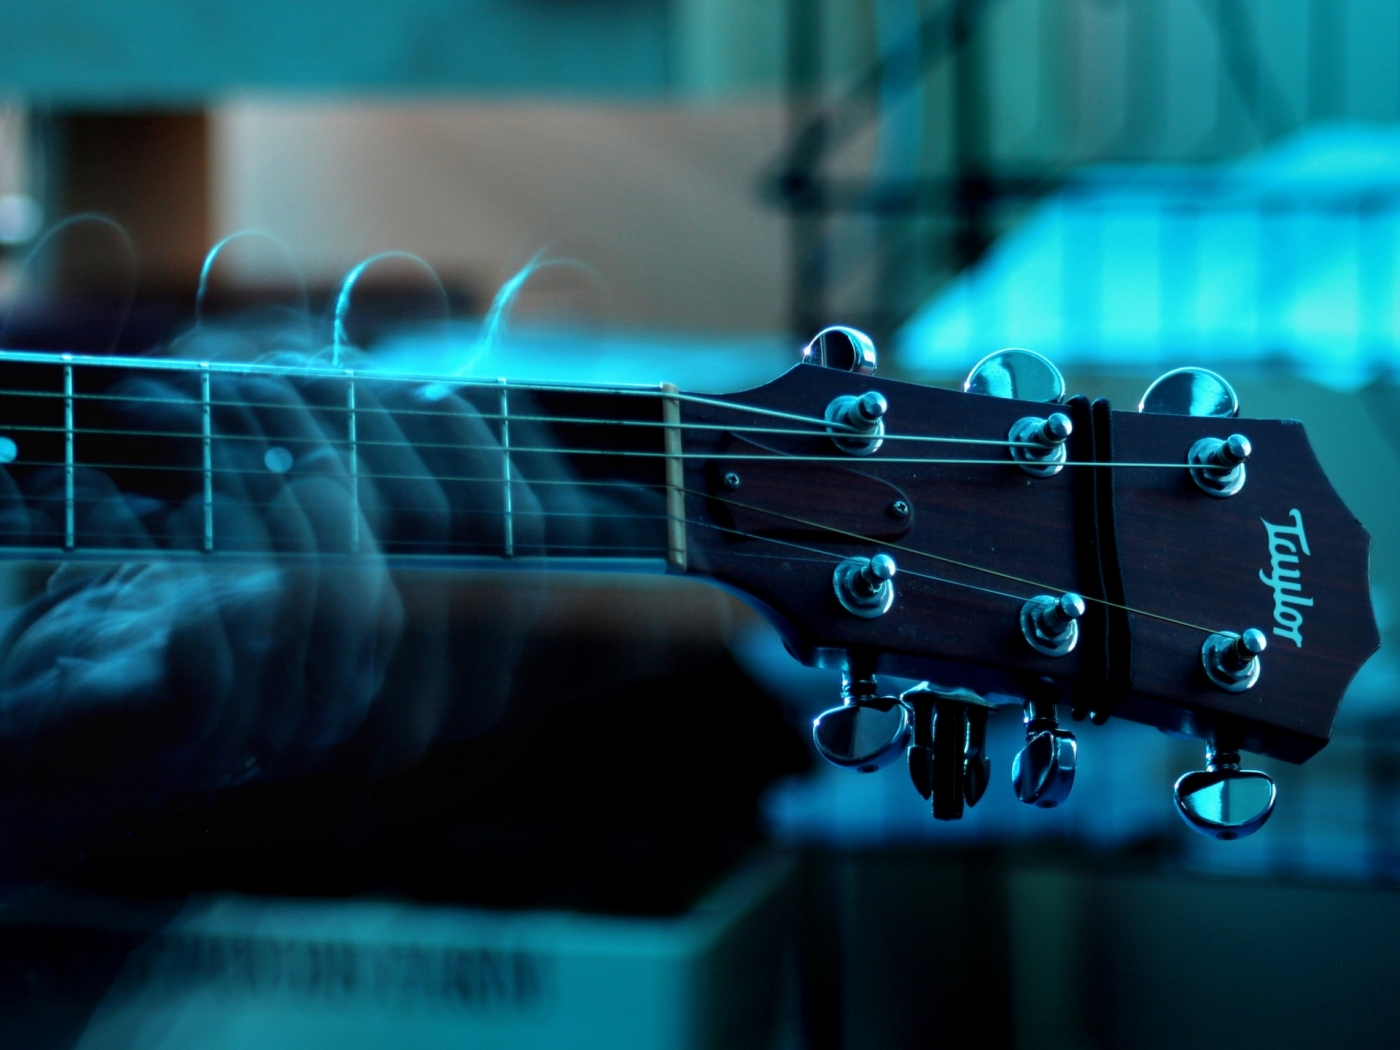 43911 download wallpaper Music, Guitars, Objects screensavers and pictures for free